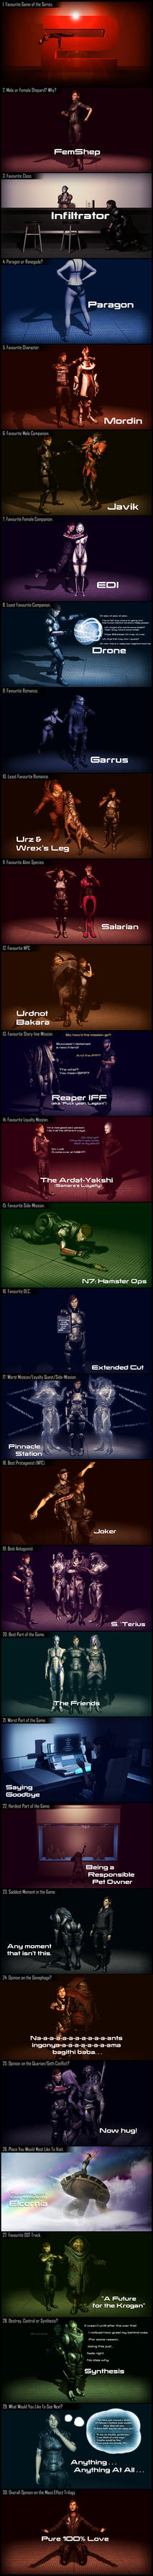 30 Day Mass Effect Challenge by Lordess-Alicia